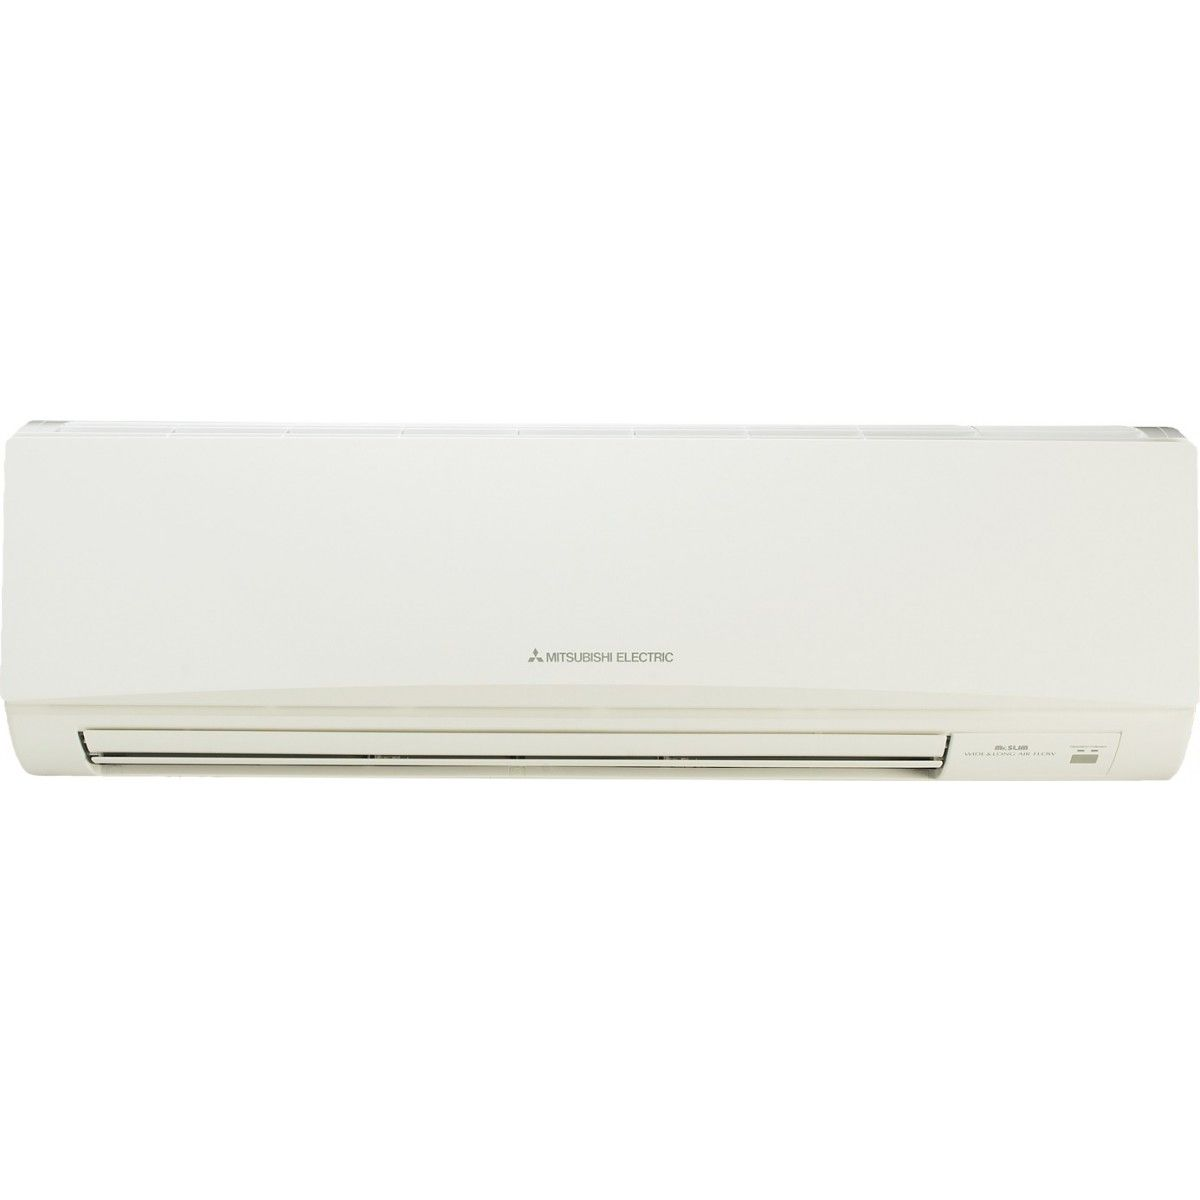 #737058 30K BTU Mitsubishi PKAA Wall Mounted Indoor Unit In  Recommended 5397 Mitsubishi Heat Pump Parts pics with 1200x1200 px on helpvideos.info - Air Conditioners, Air Coolers and more